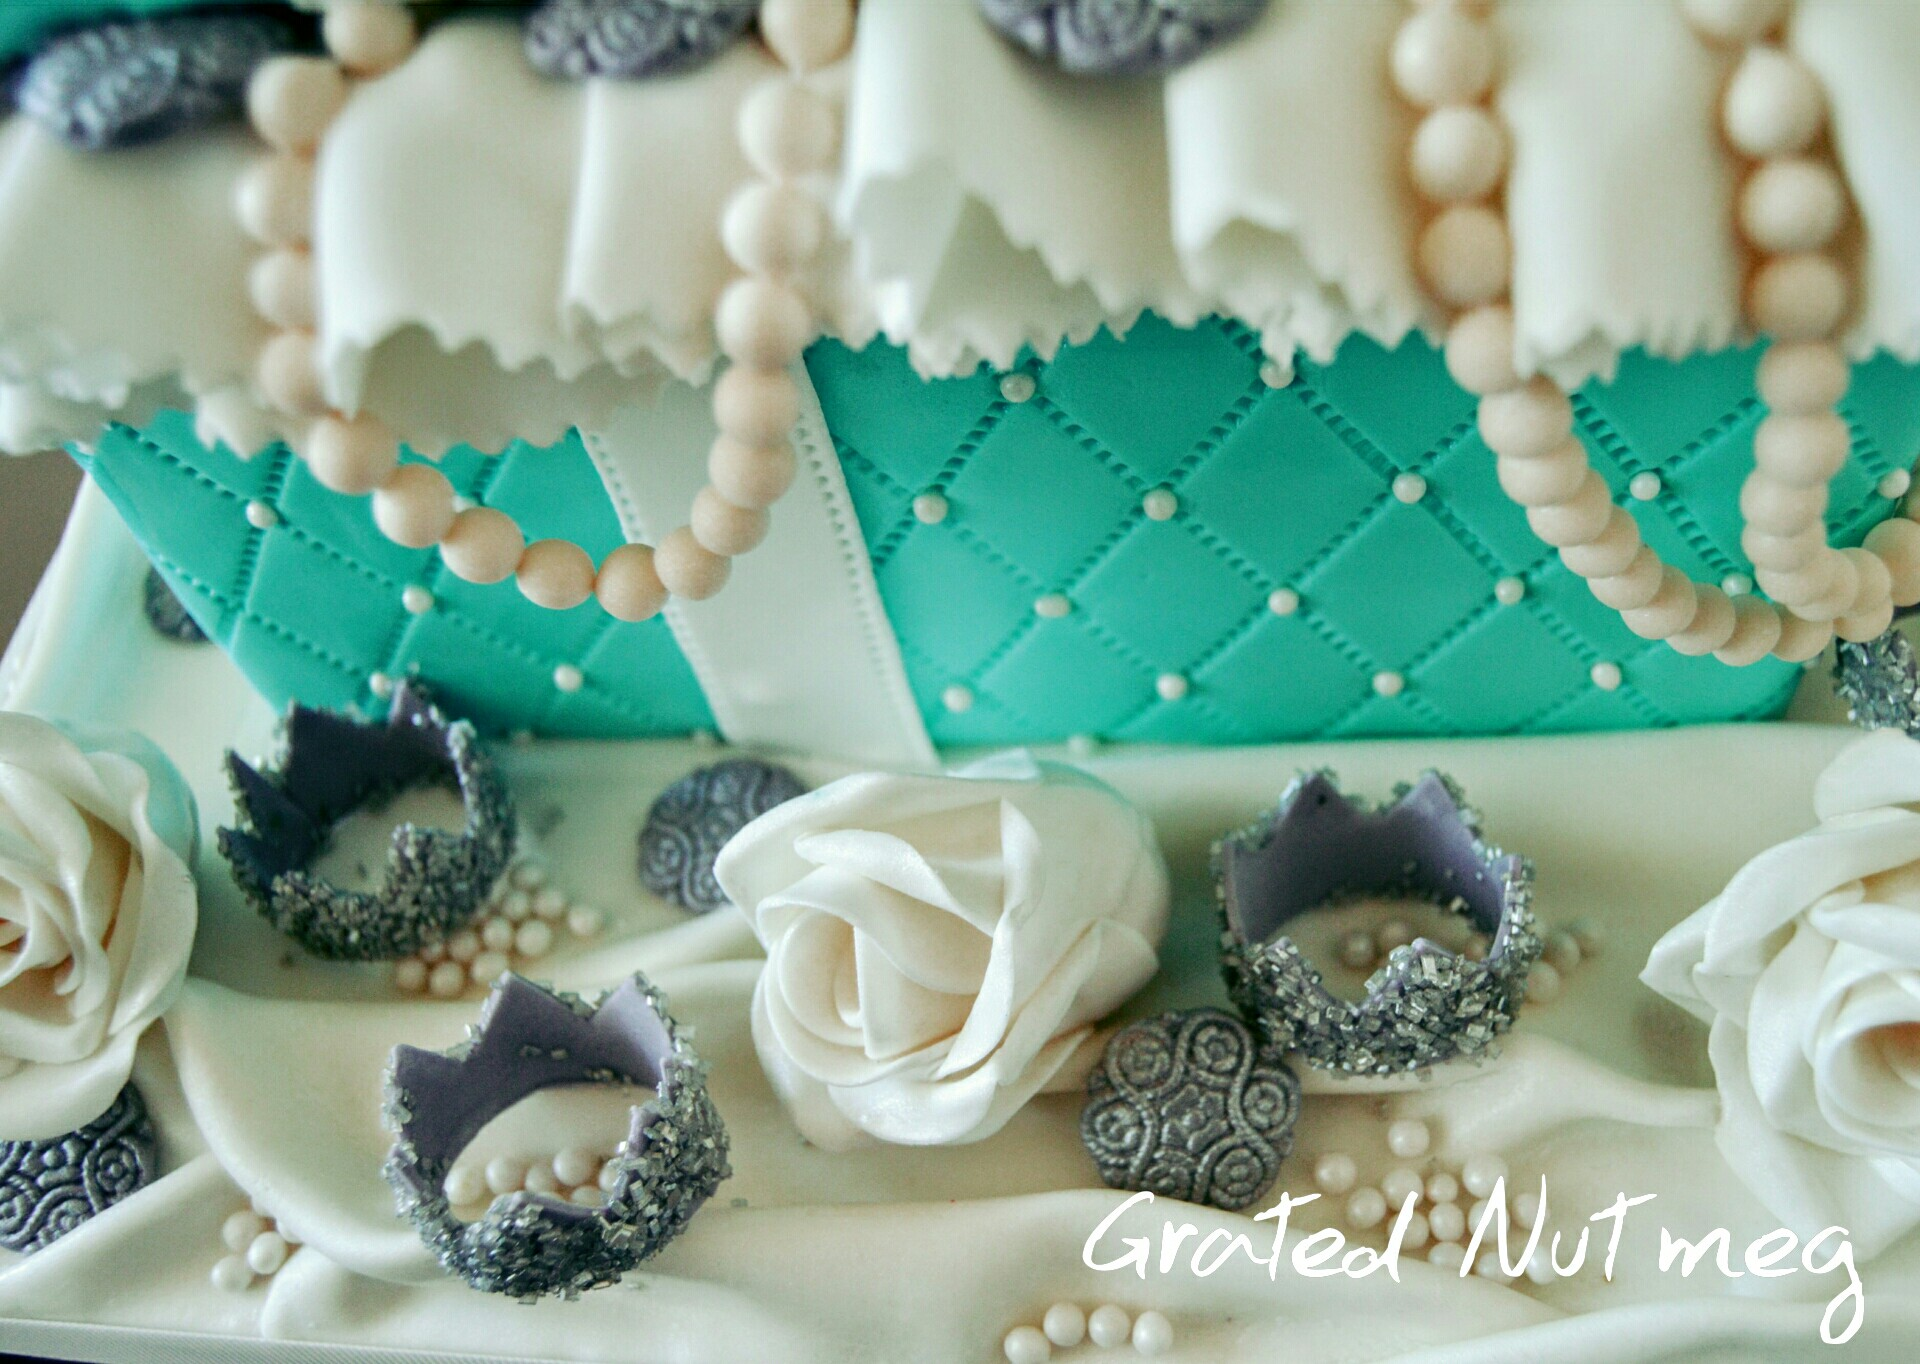 The Making of a Blue Jewelry Gift Box Cake Grated Nutmeg